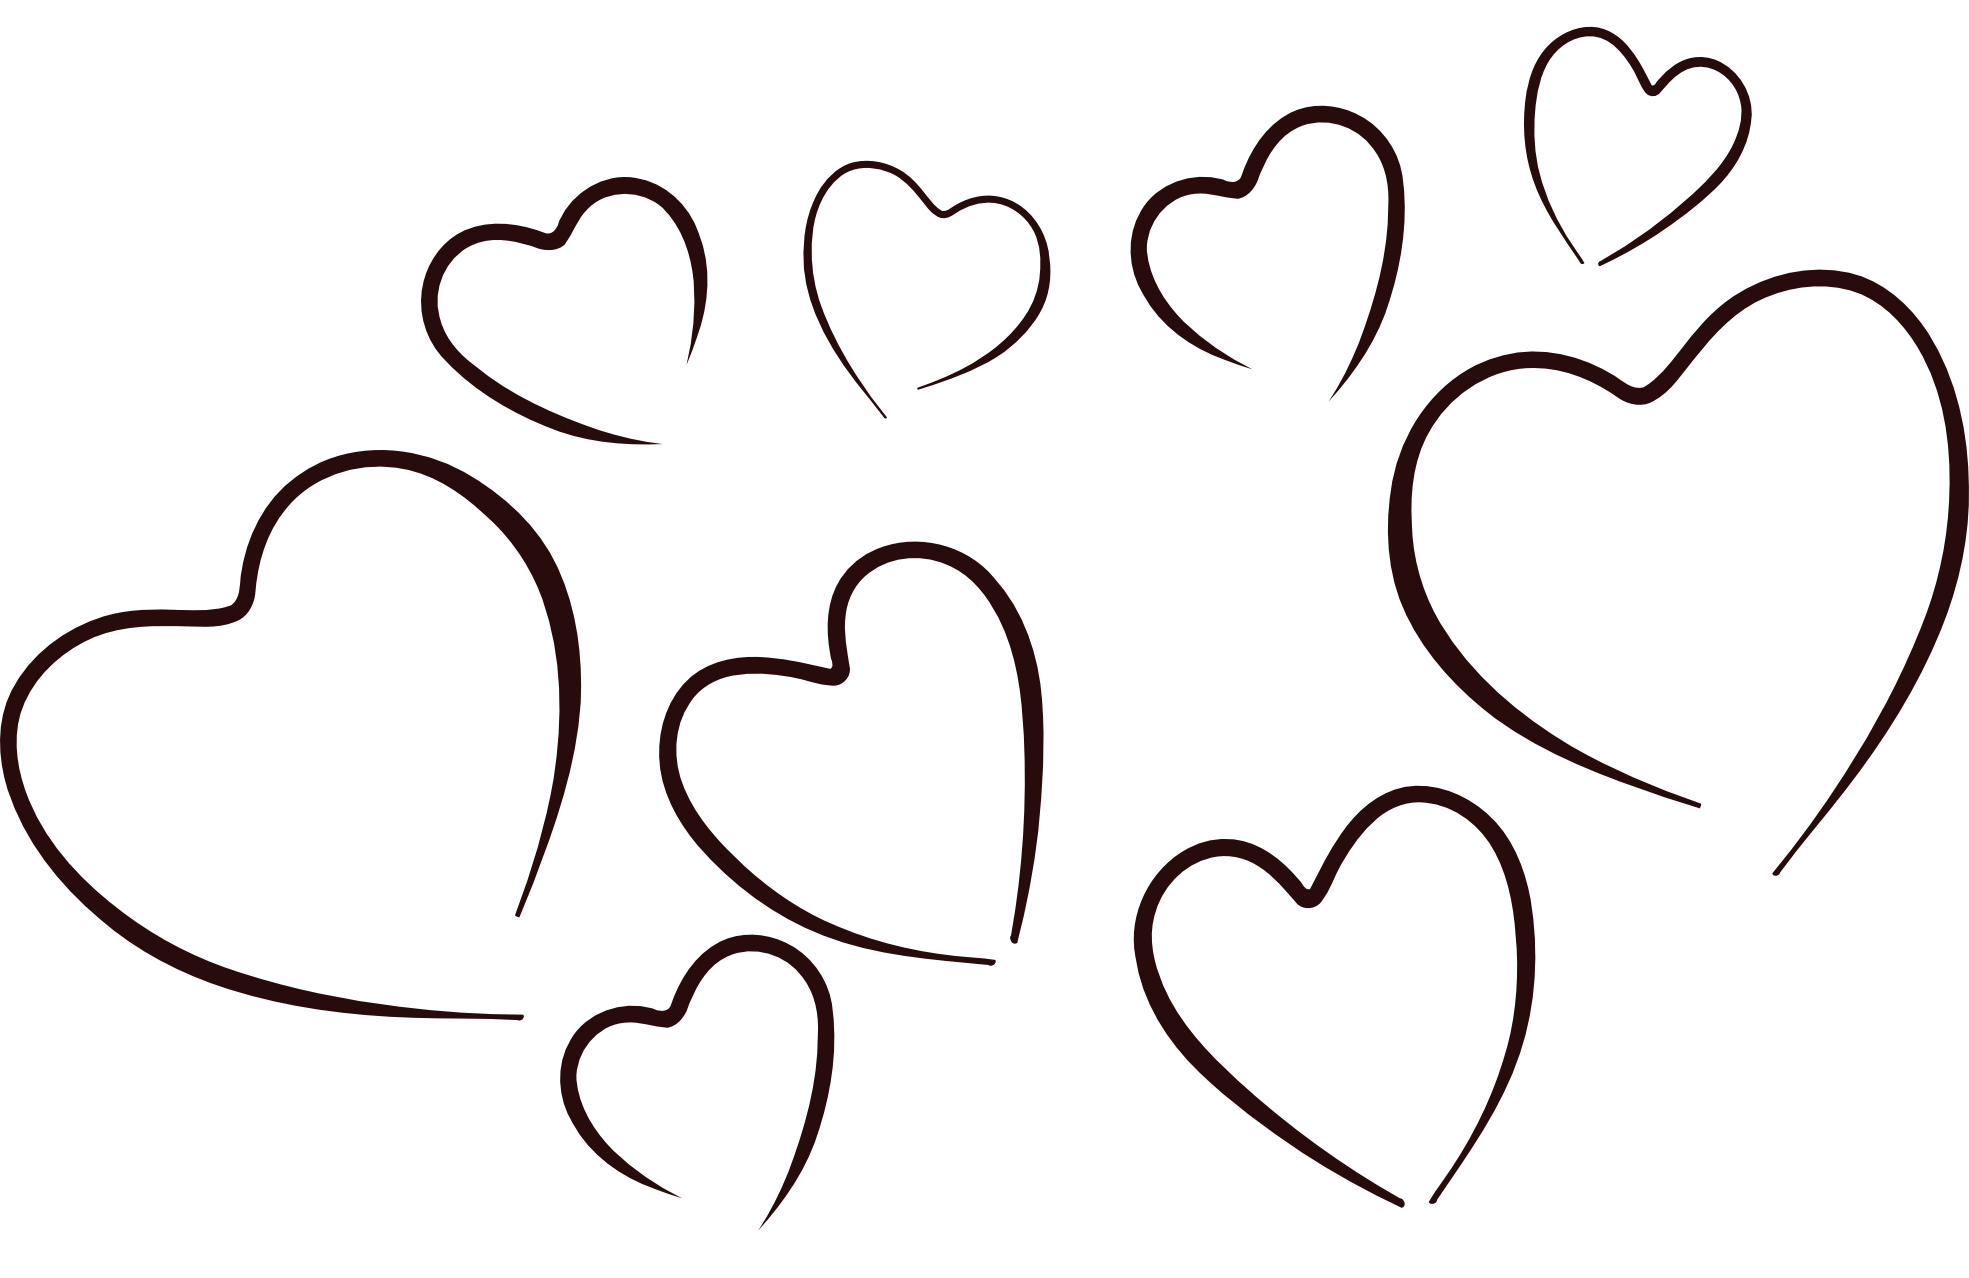 Heart black and white black and white heart clipart kid.